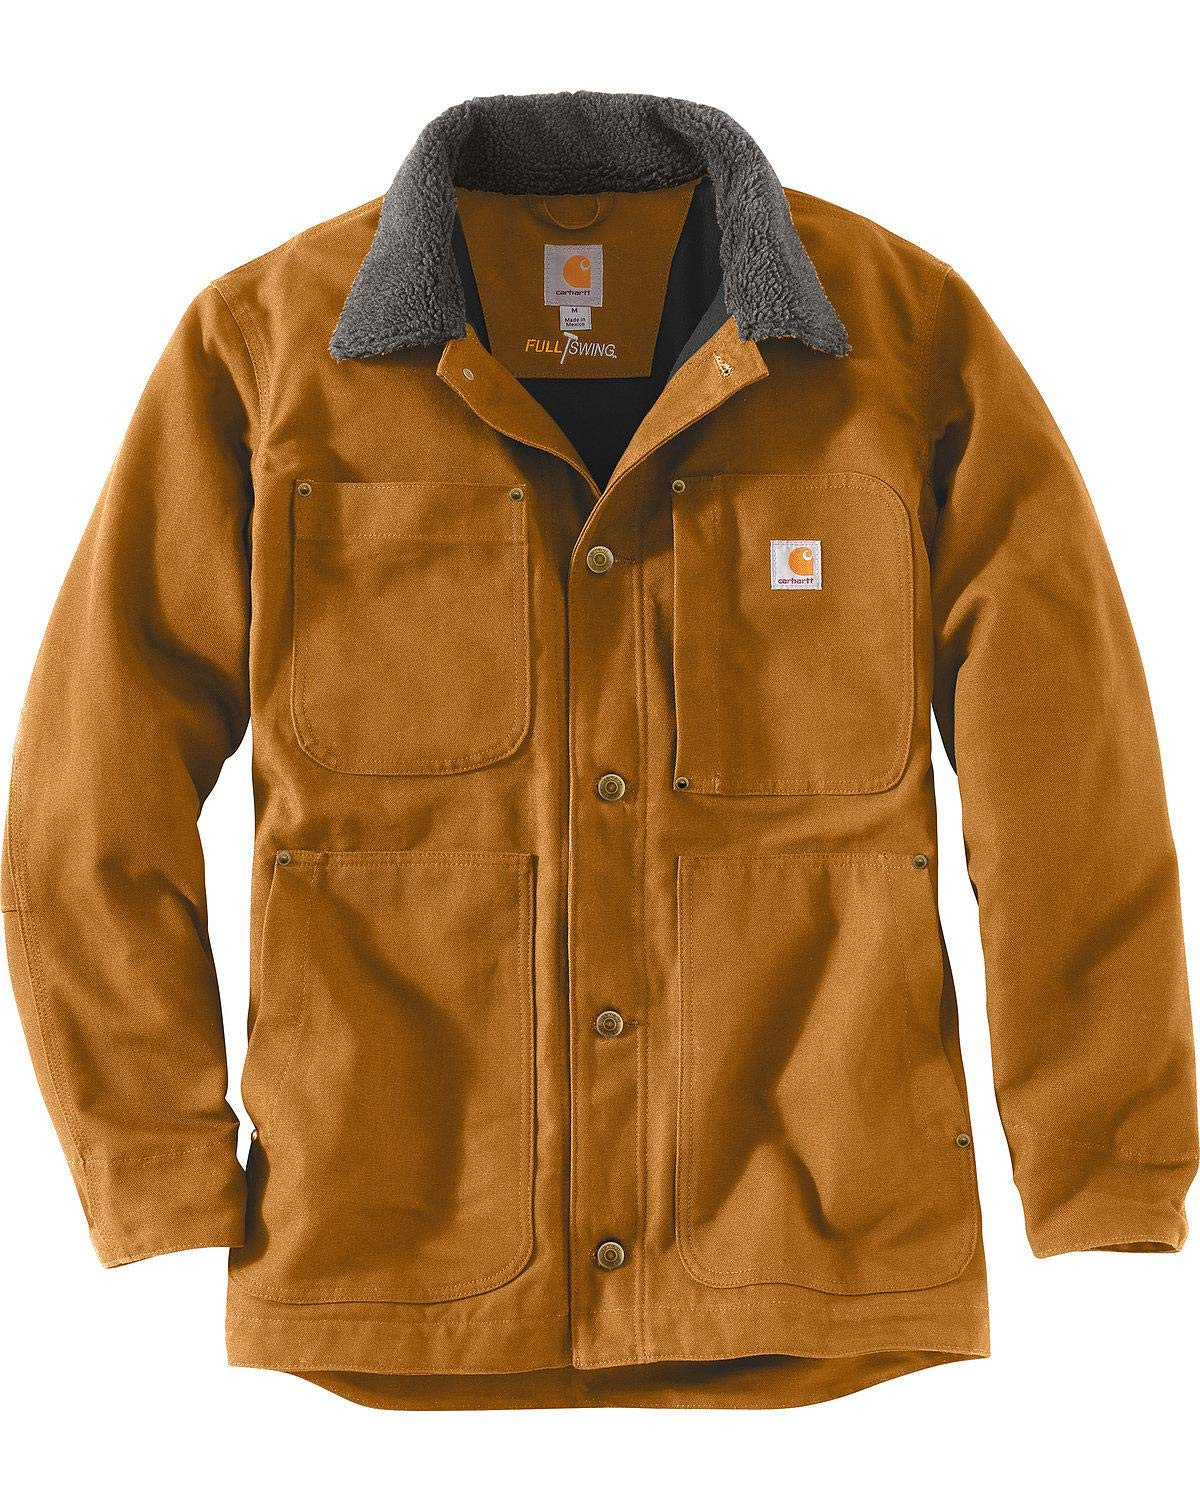 Carhartt Men's Full Swing Chore Coat, Brown, Large by Carhartt